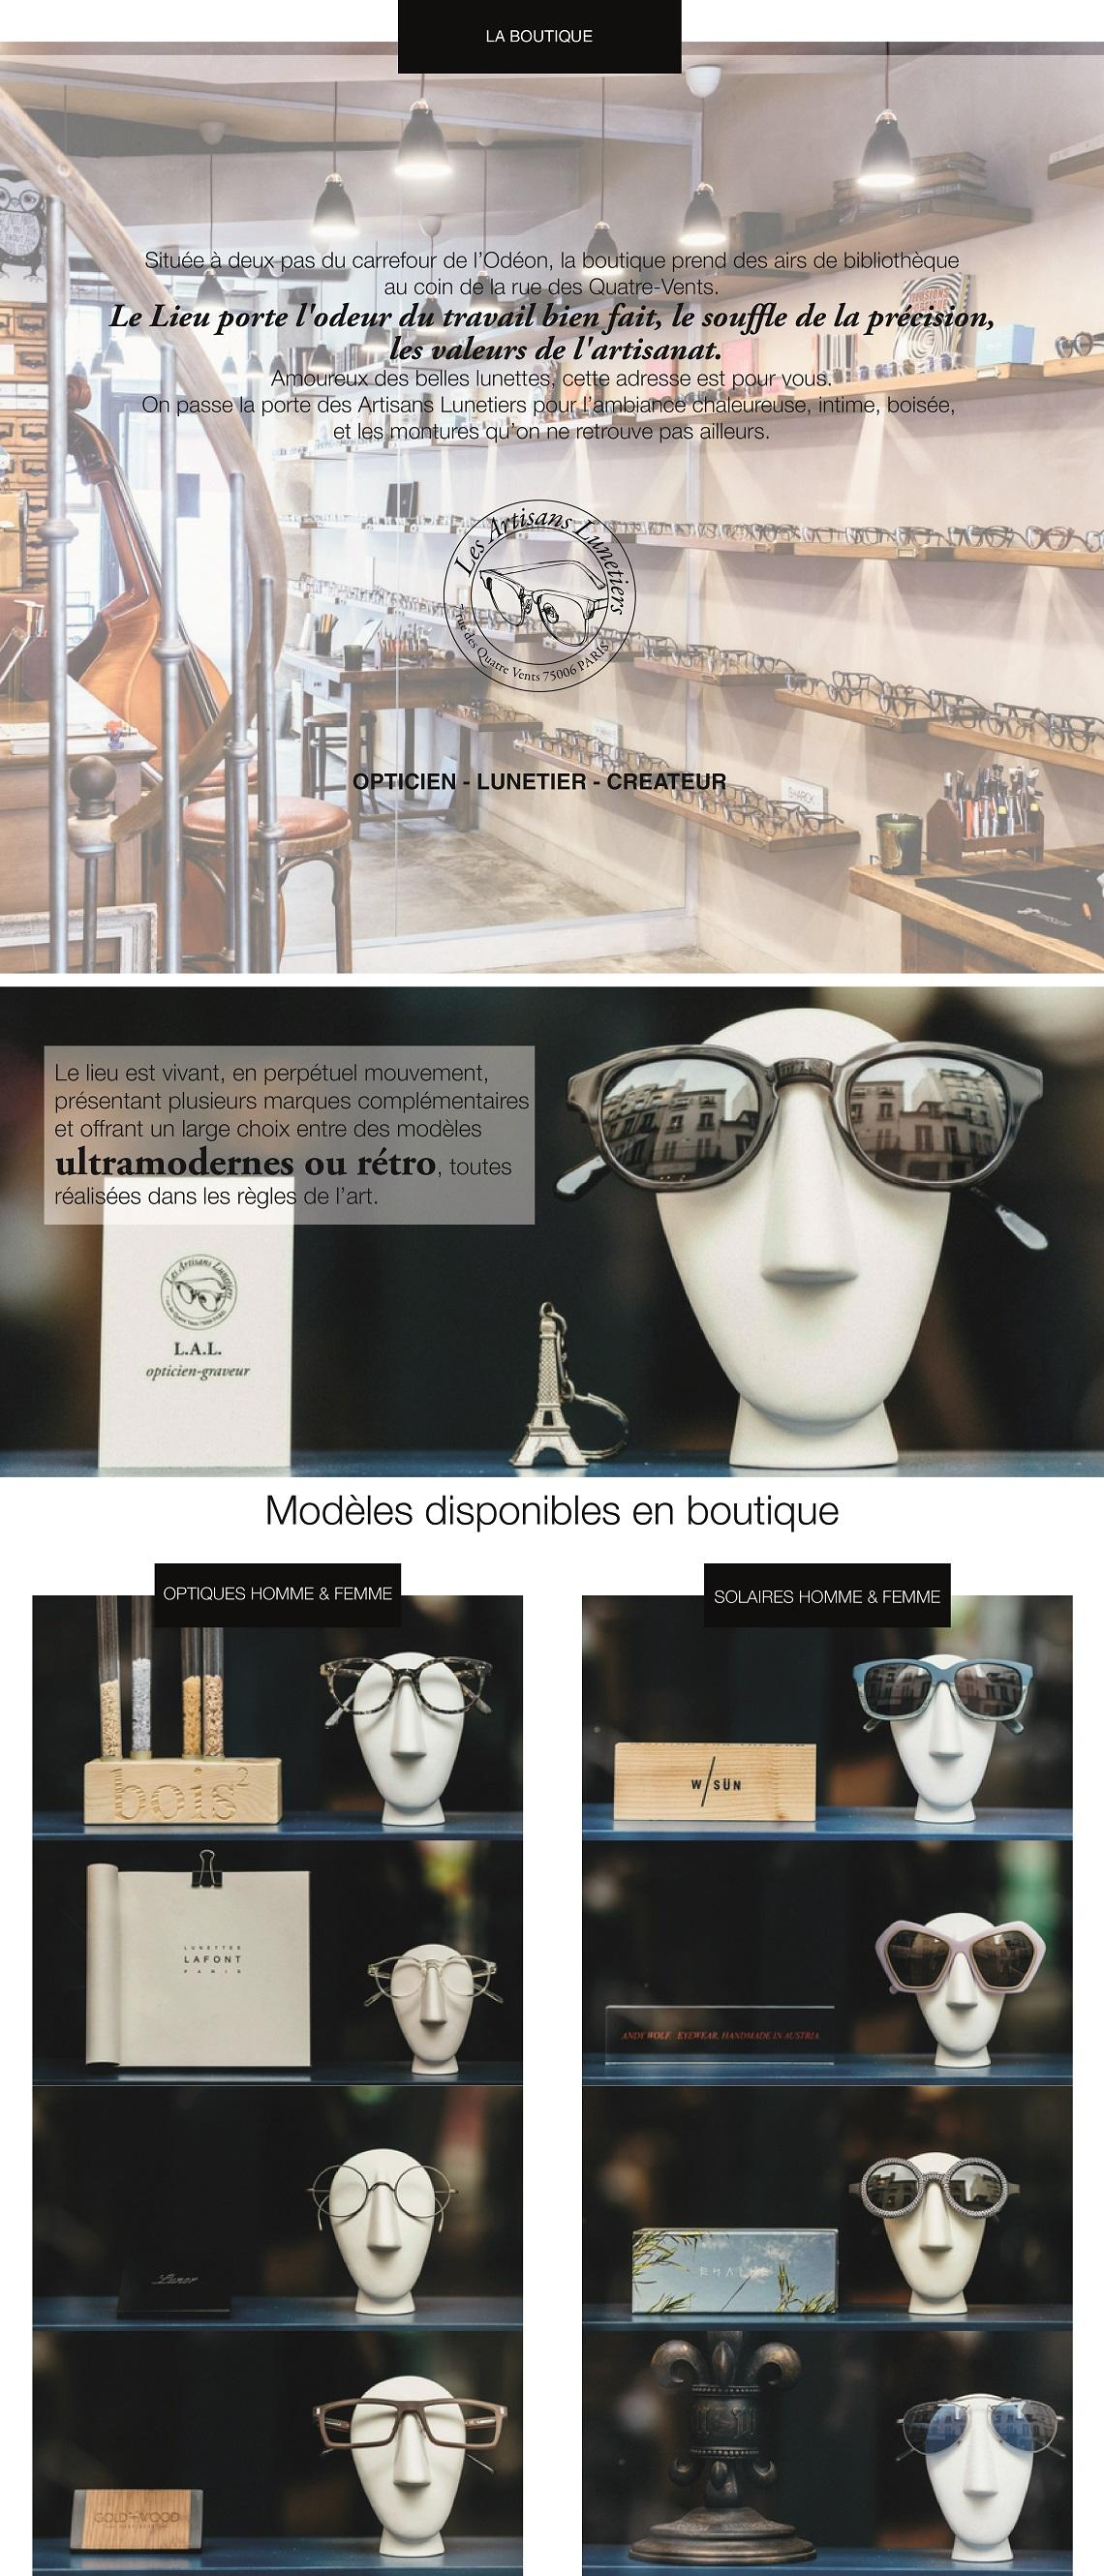 la boutique 7 rue des quatre vents paris odéon france 75006